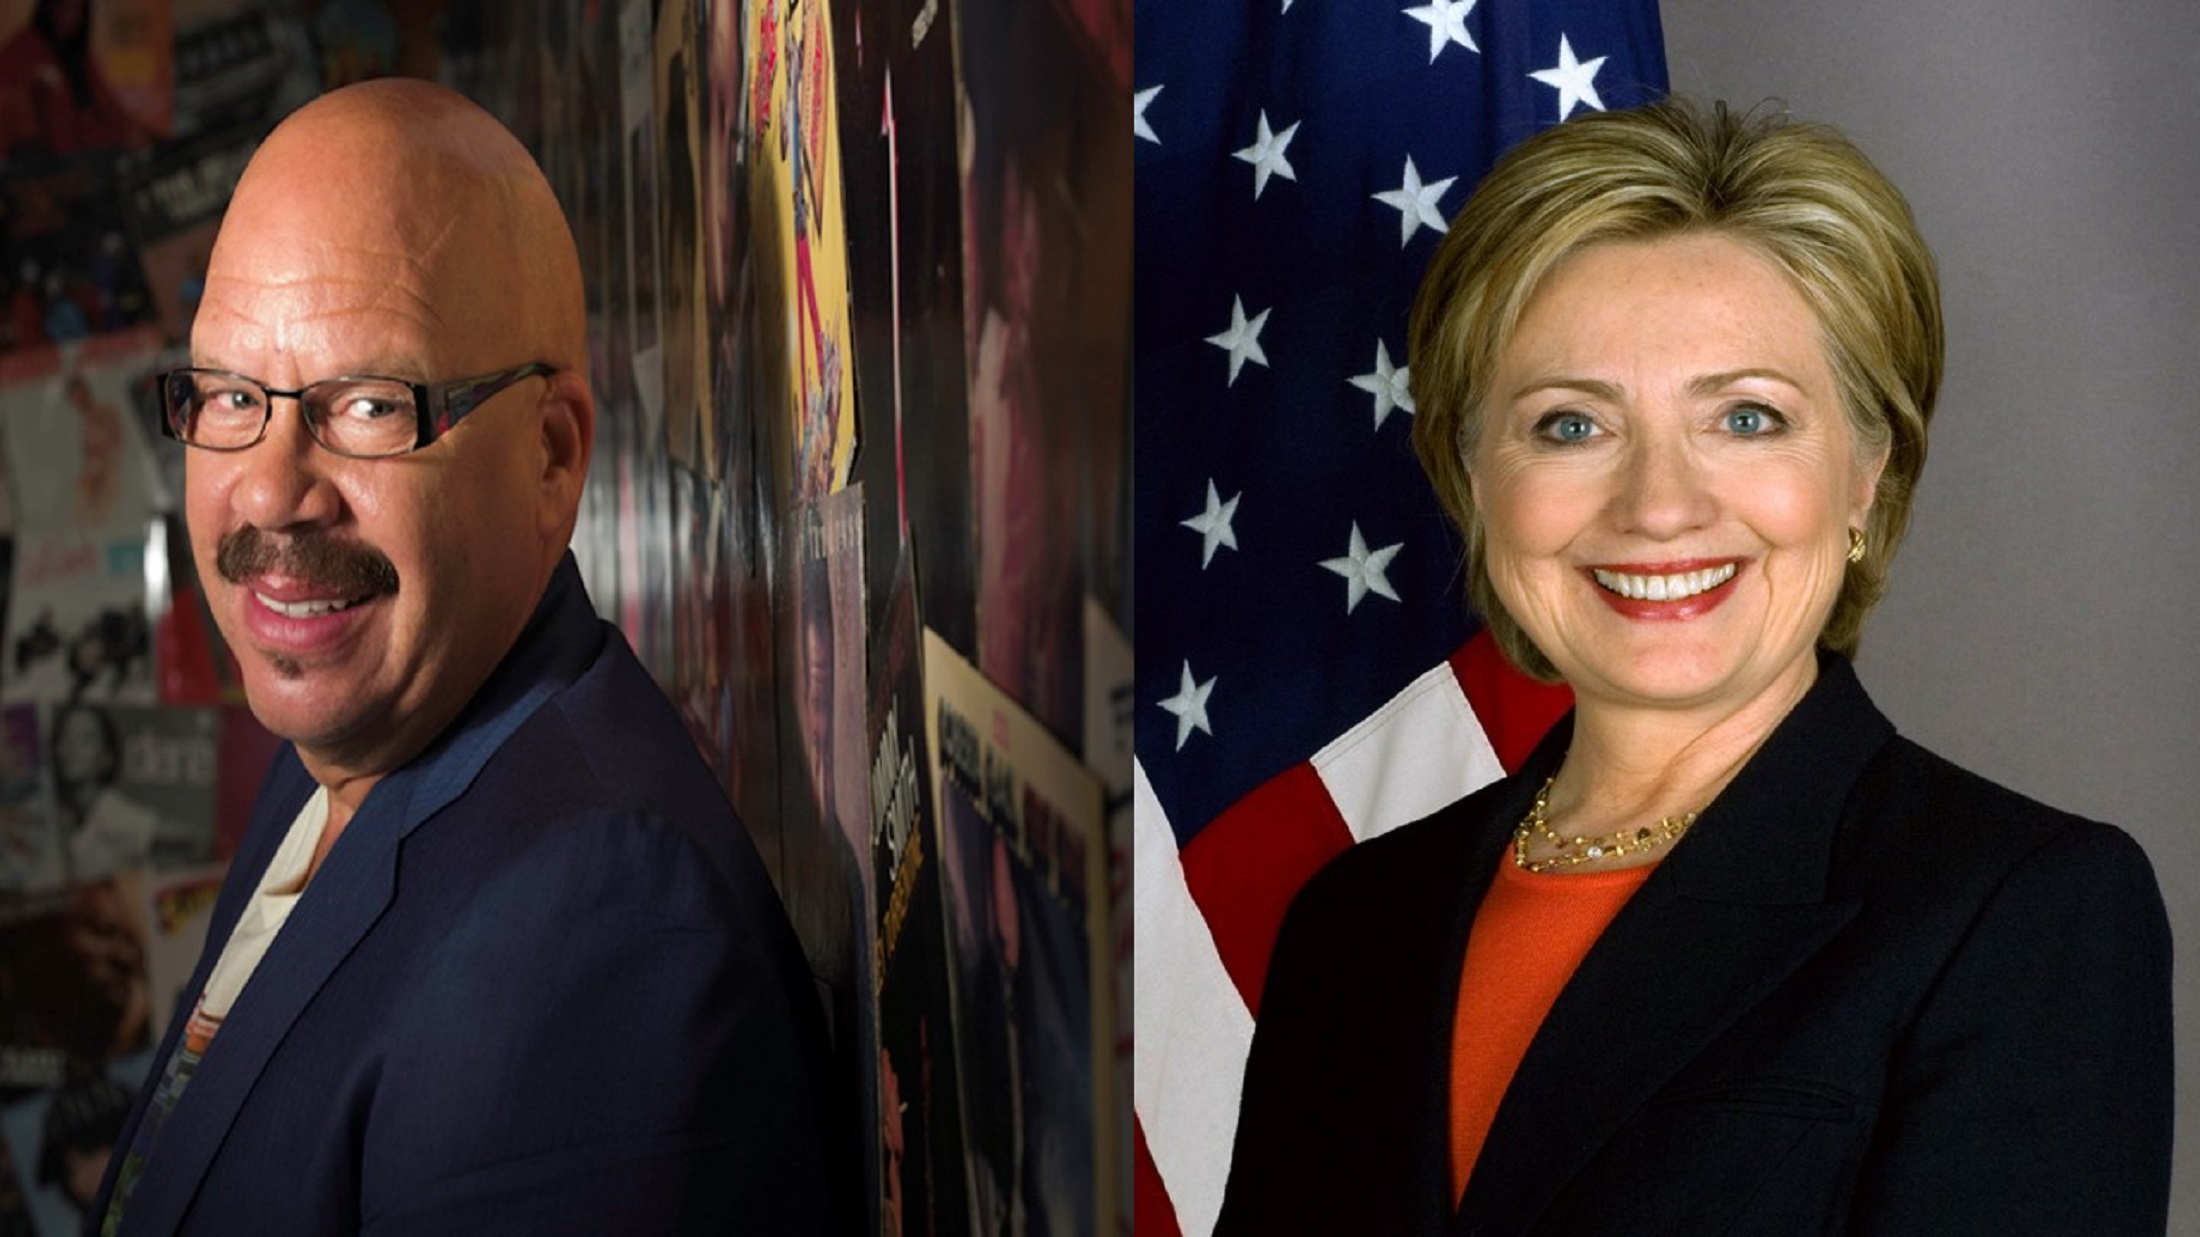 Hear Tom Joyner's Exclusive Interview With Hillary Clinton